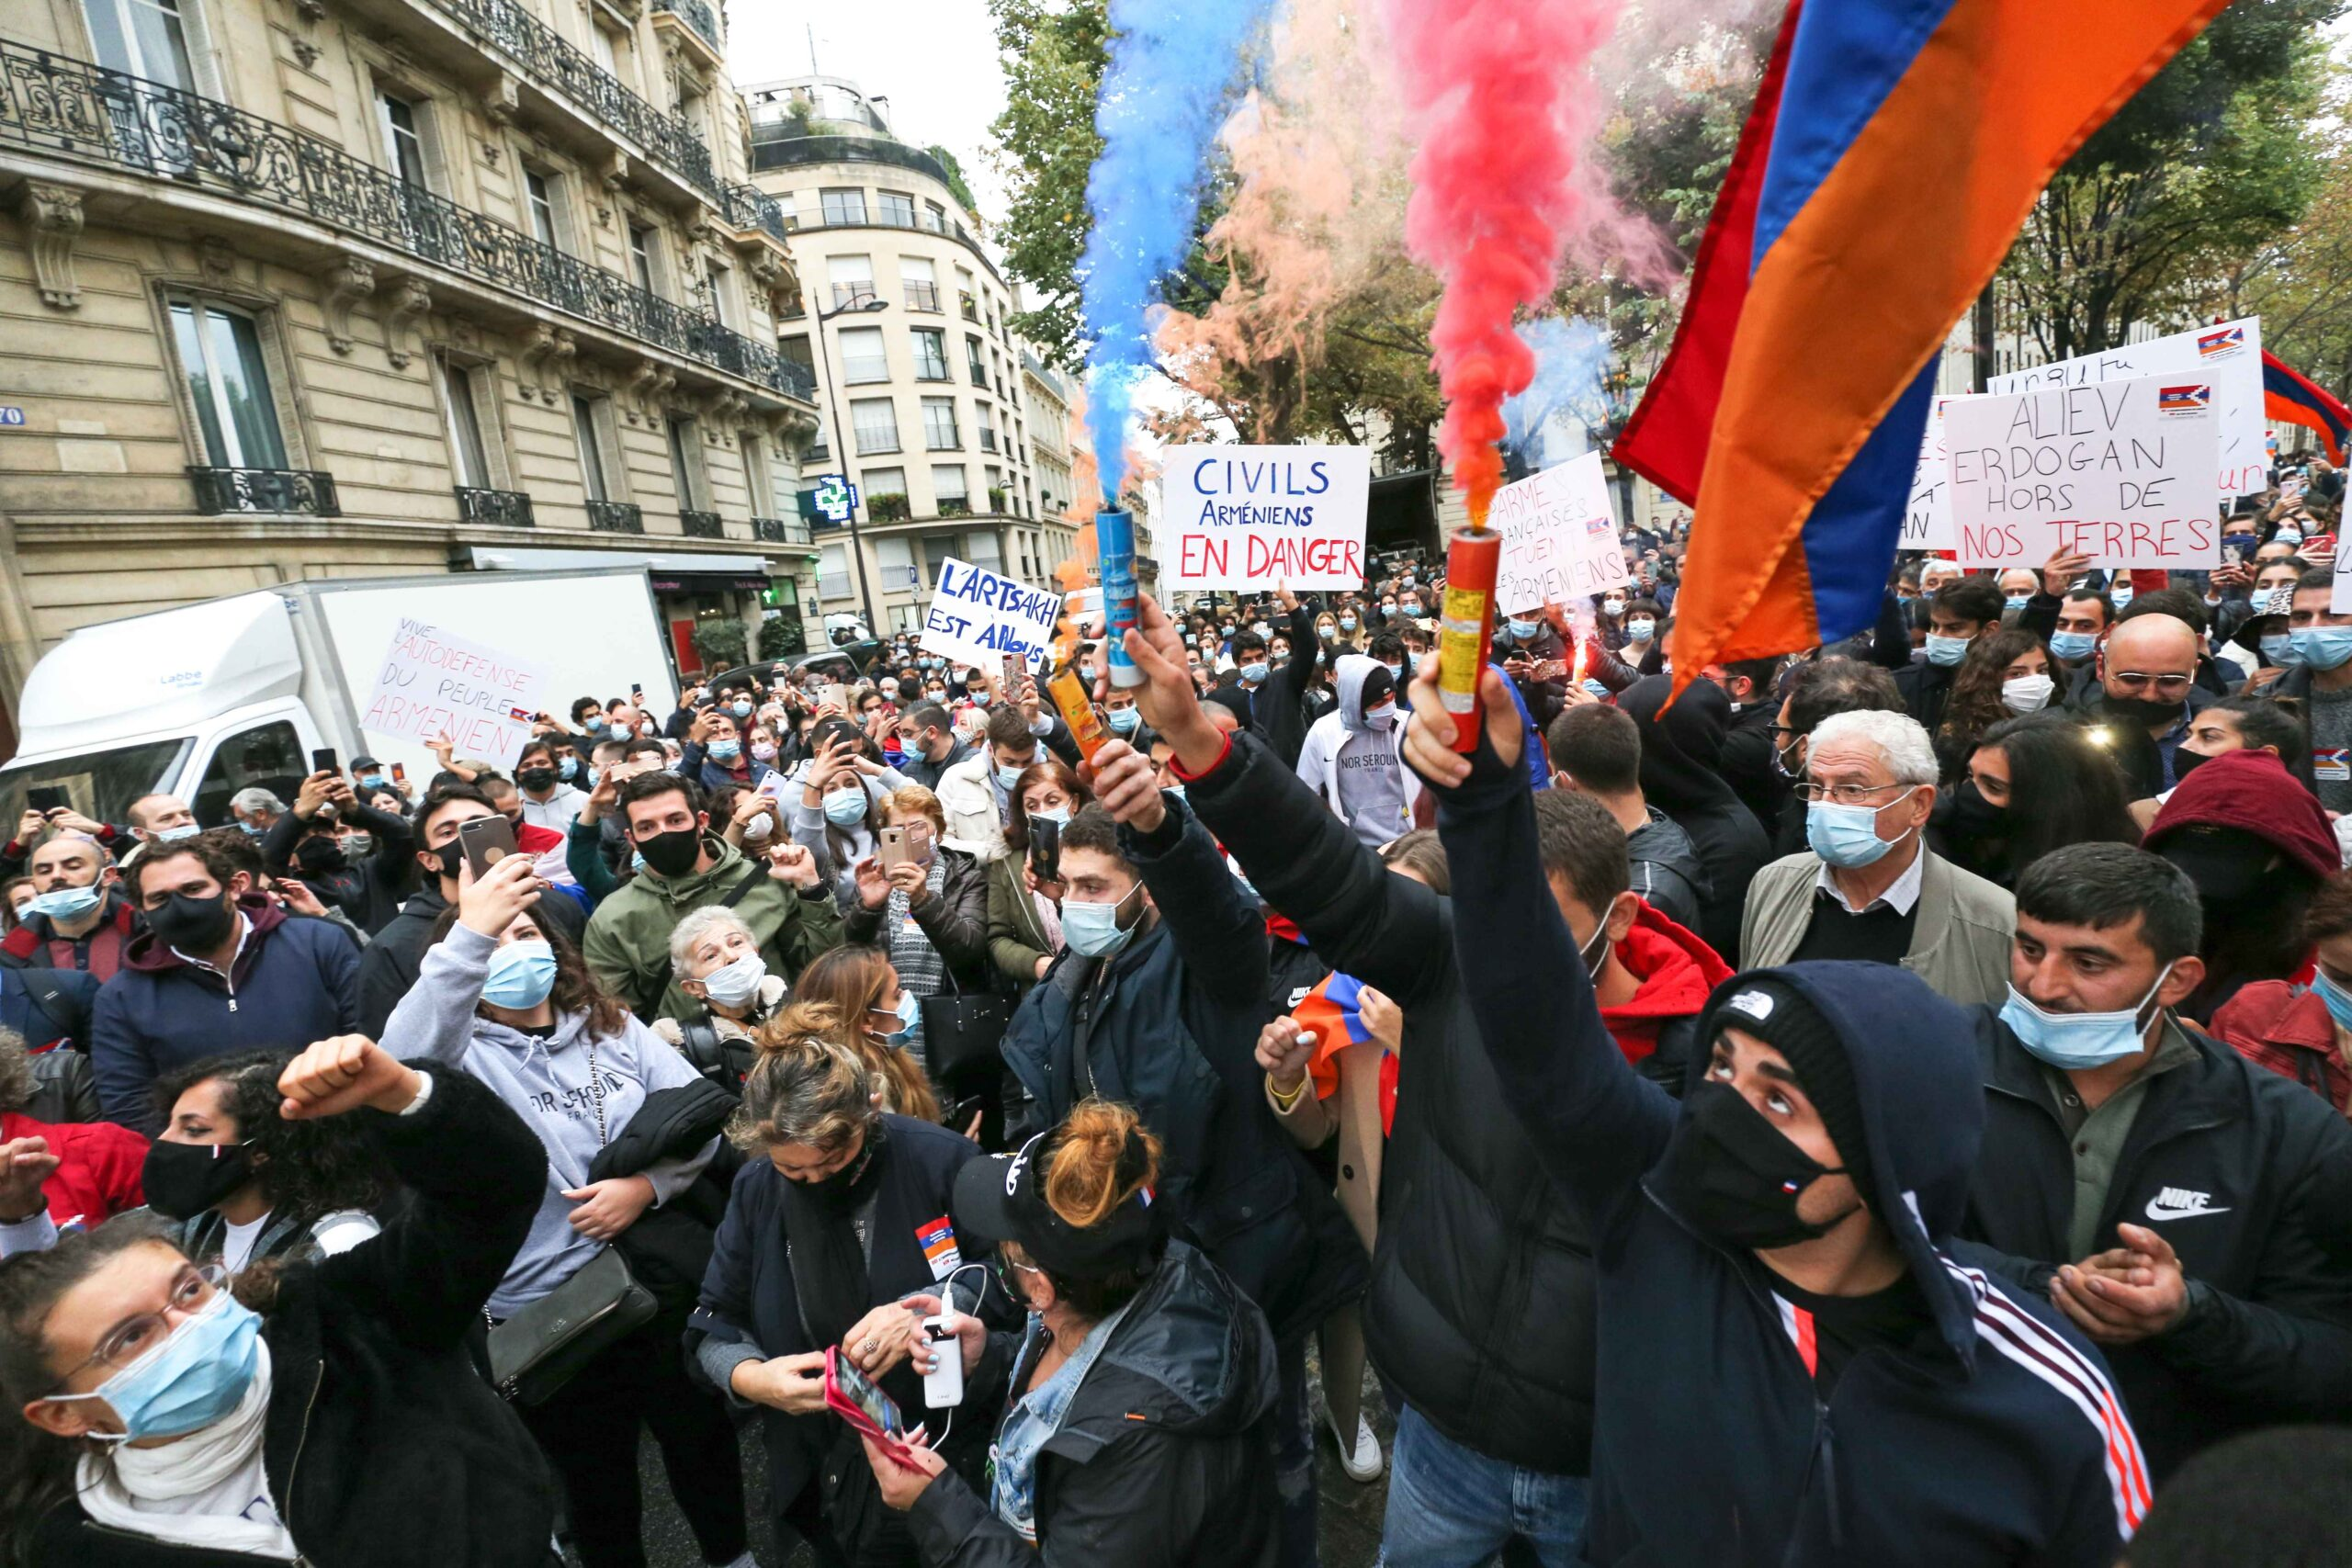 Armenians, carrying smoke bombs and flags in the colors of Armenia take part in a demonstration of Armenians in front of the Azerbaijan ambassy in Paris, France, on September 29, 2020 against the Azerbayan attacks on Nagorno Karabakh.